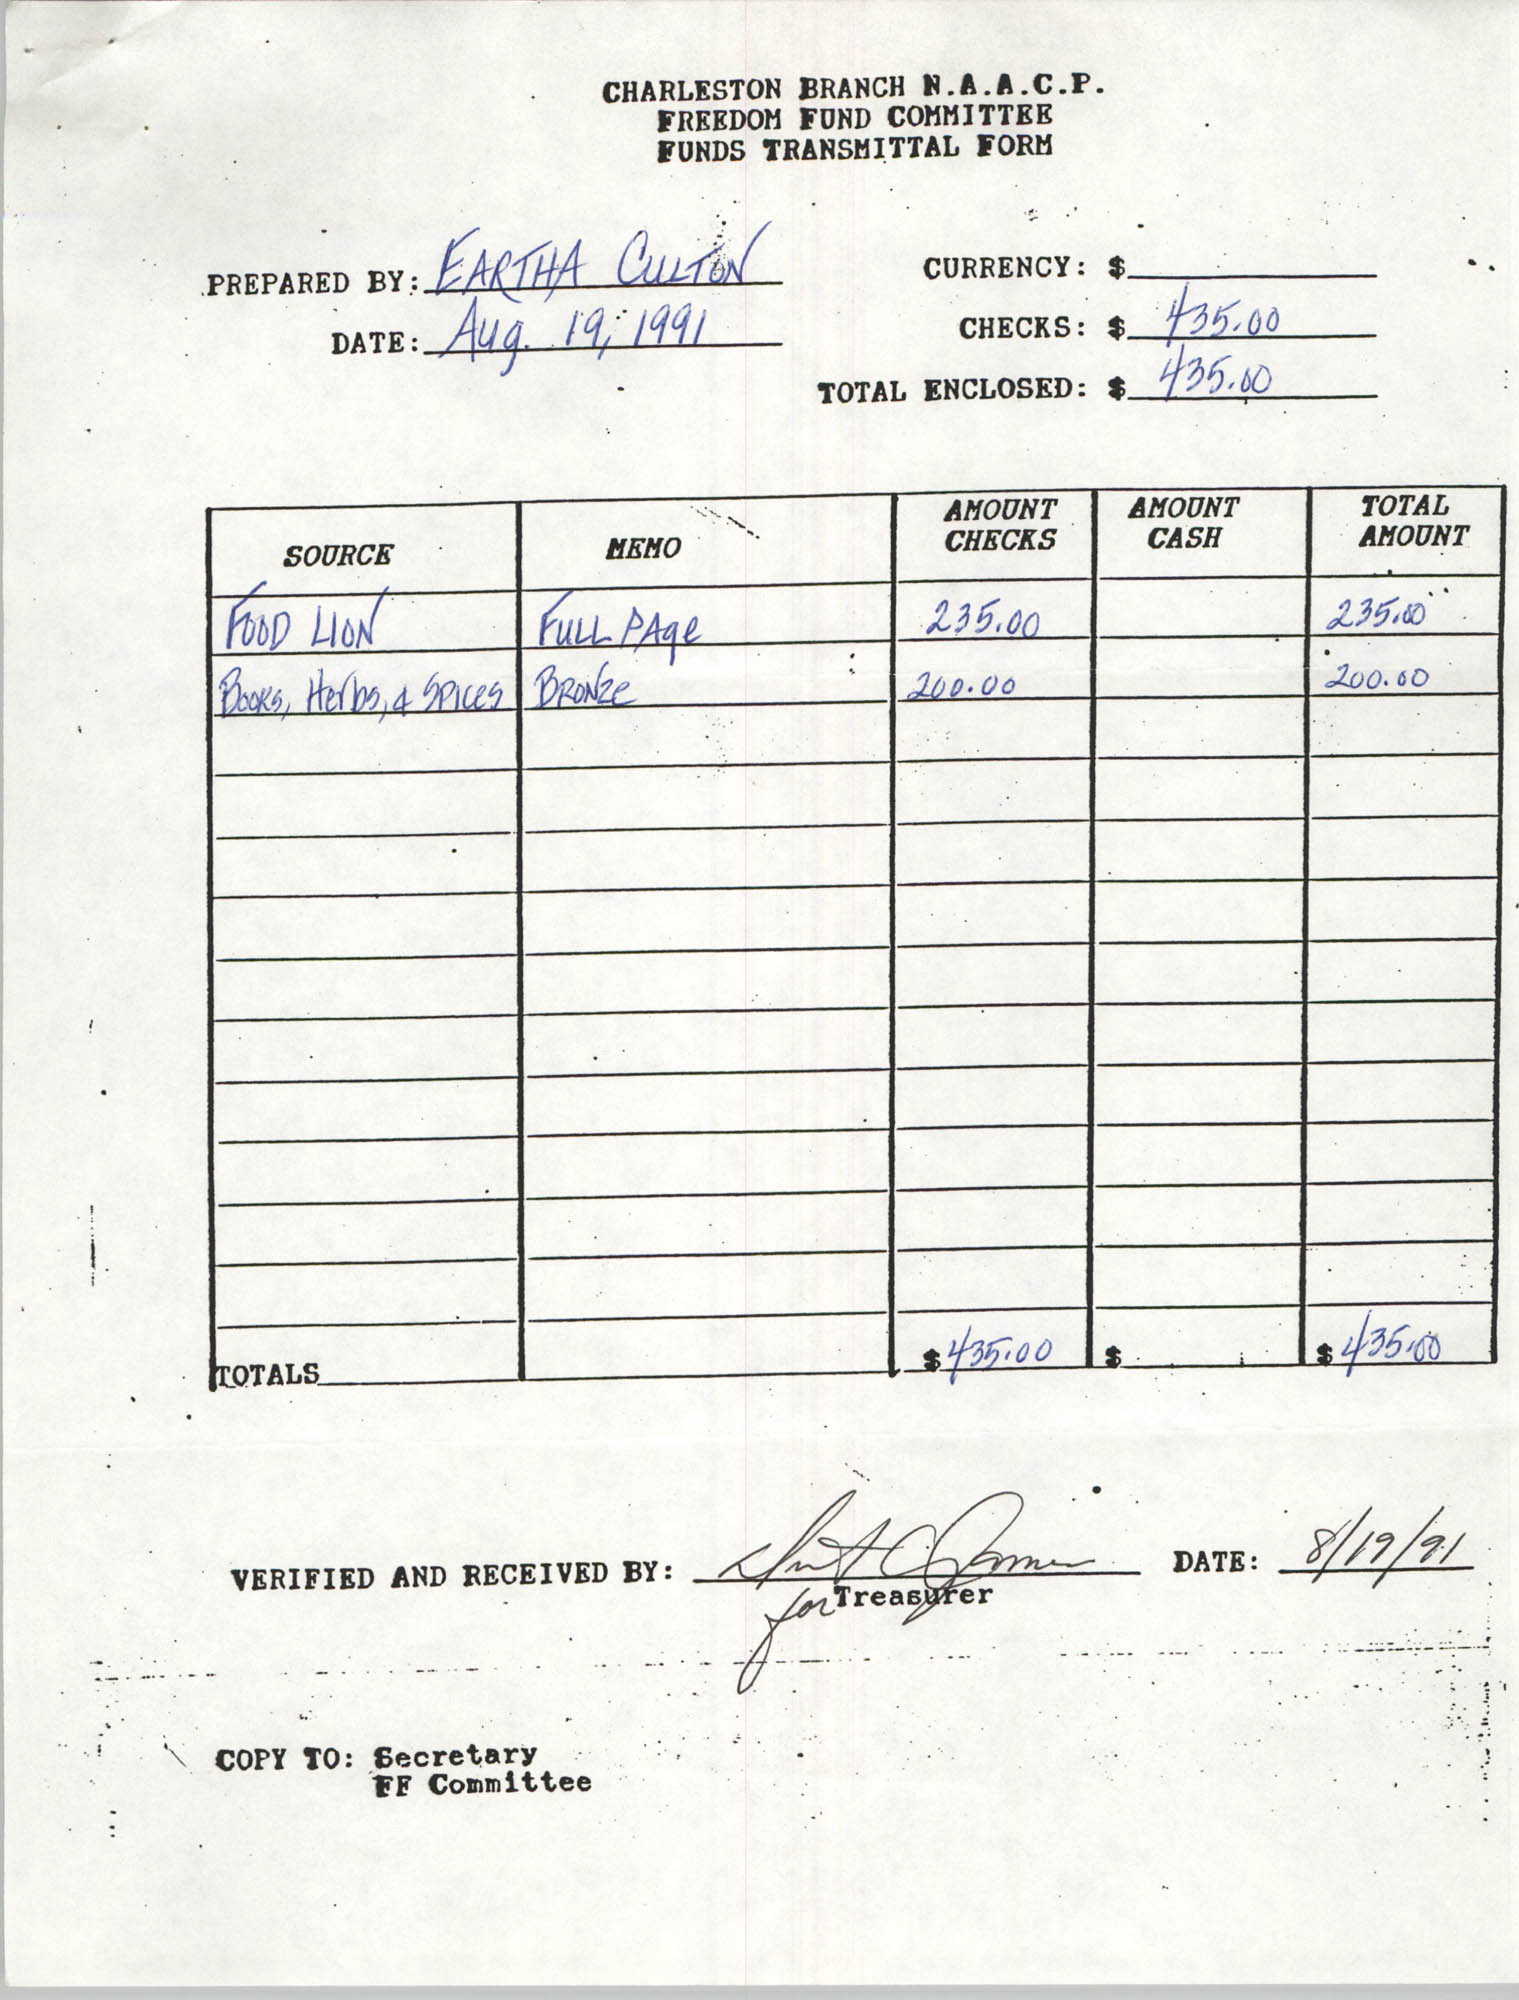 Charleston Branch of the NAACP Funds Transmittal Forms, August 1991, Page 18